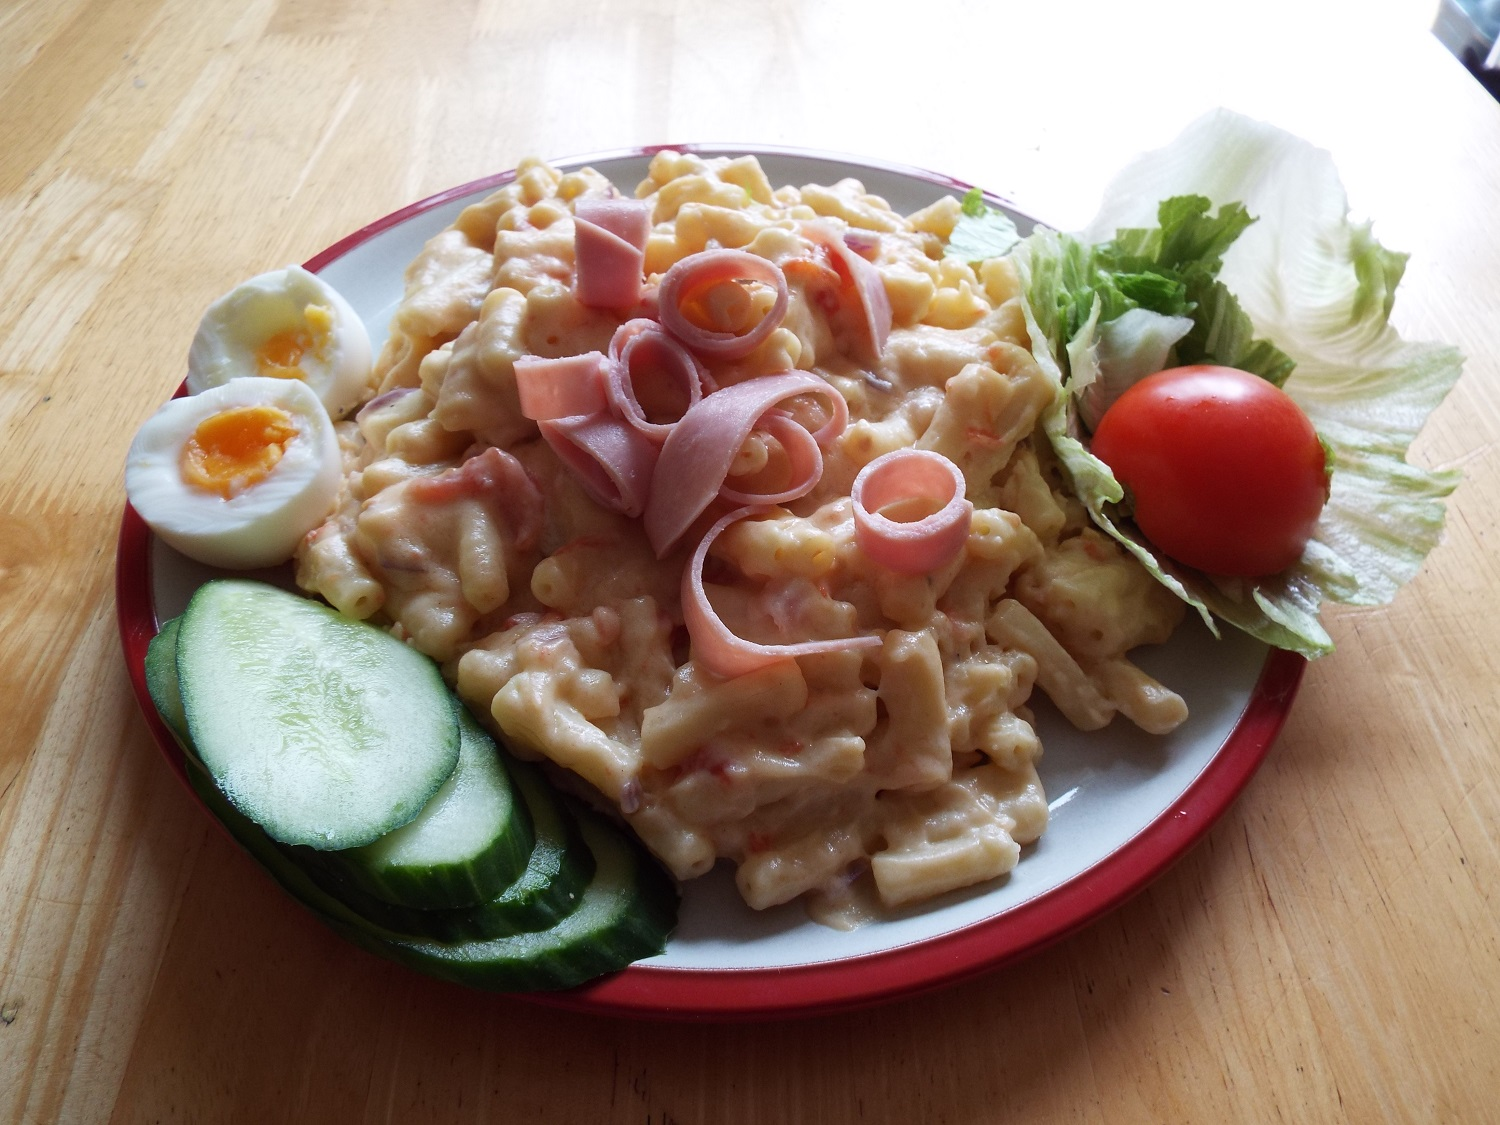 YES! That's more like it ...macaroni cheese, with that ham salad for garnish